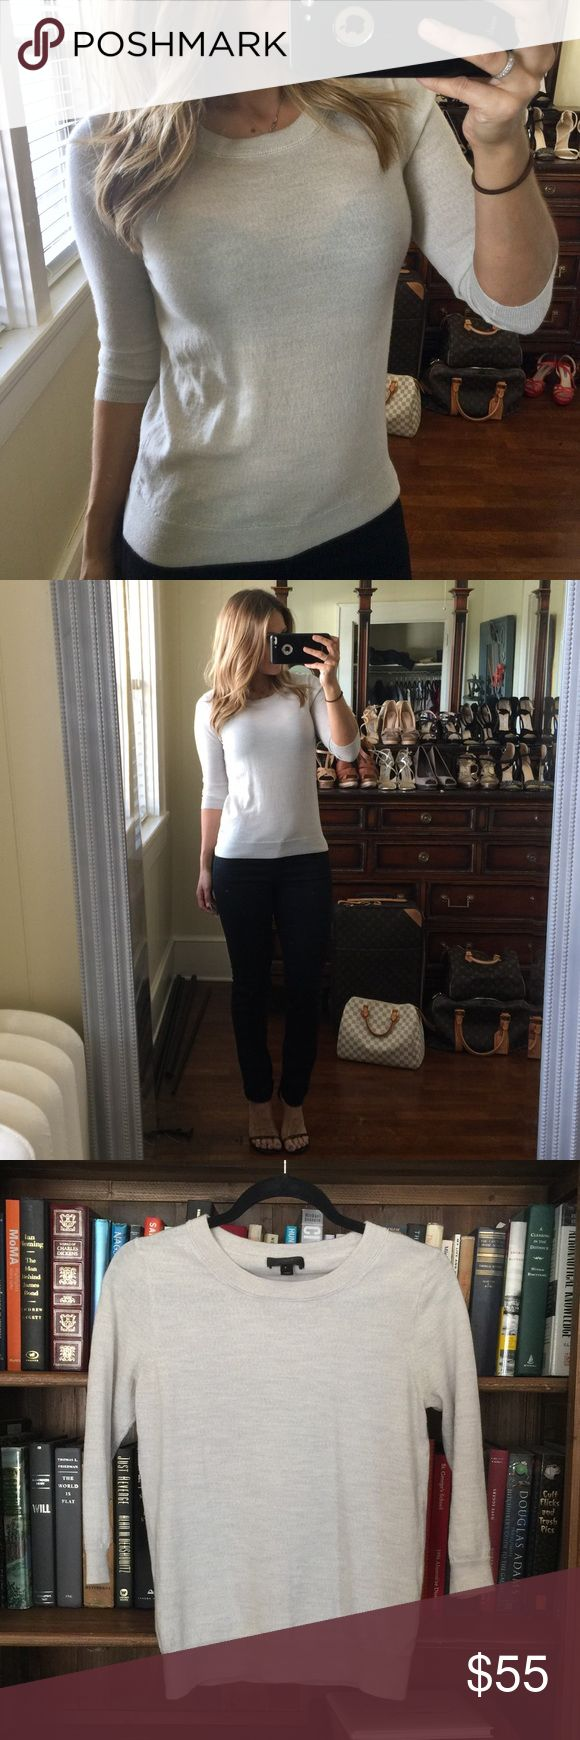 J. Crew merino wool sweater oatmeal S 3/4 sleeve J. Crew 100% Merino wool sweater.  No thick and bulky yet still warm.  Size Small.  Slim feminine fit.  Excellent condition.  It's not sheer but I accidentally modeled with a black bra and would just recommend a lighter colored one.  :). J. Crew Sweaters Crew & Scoop Necks